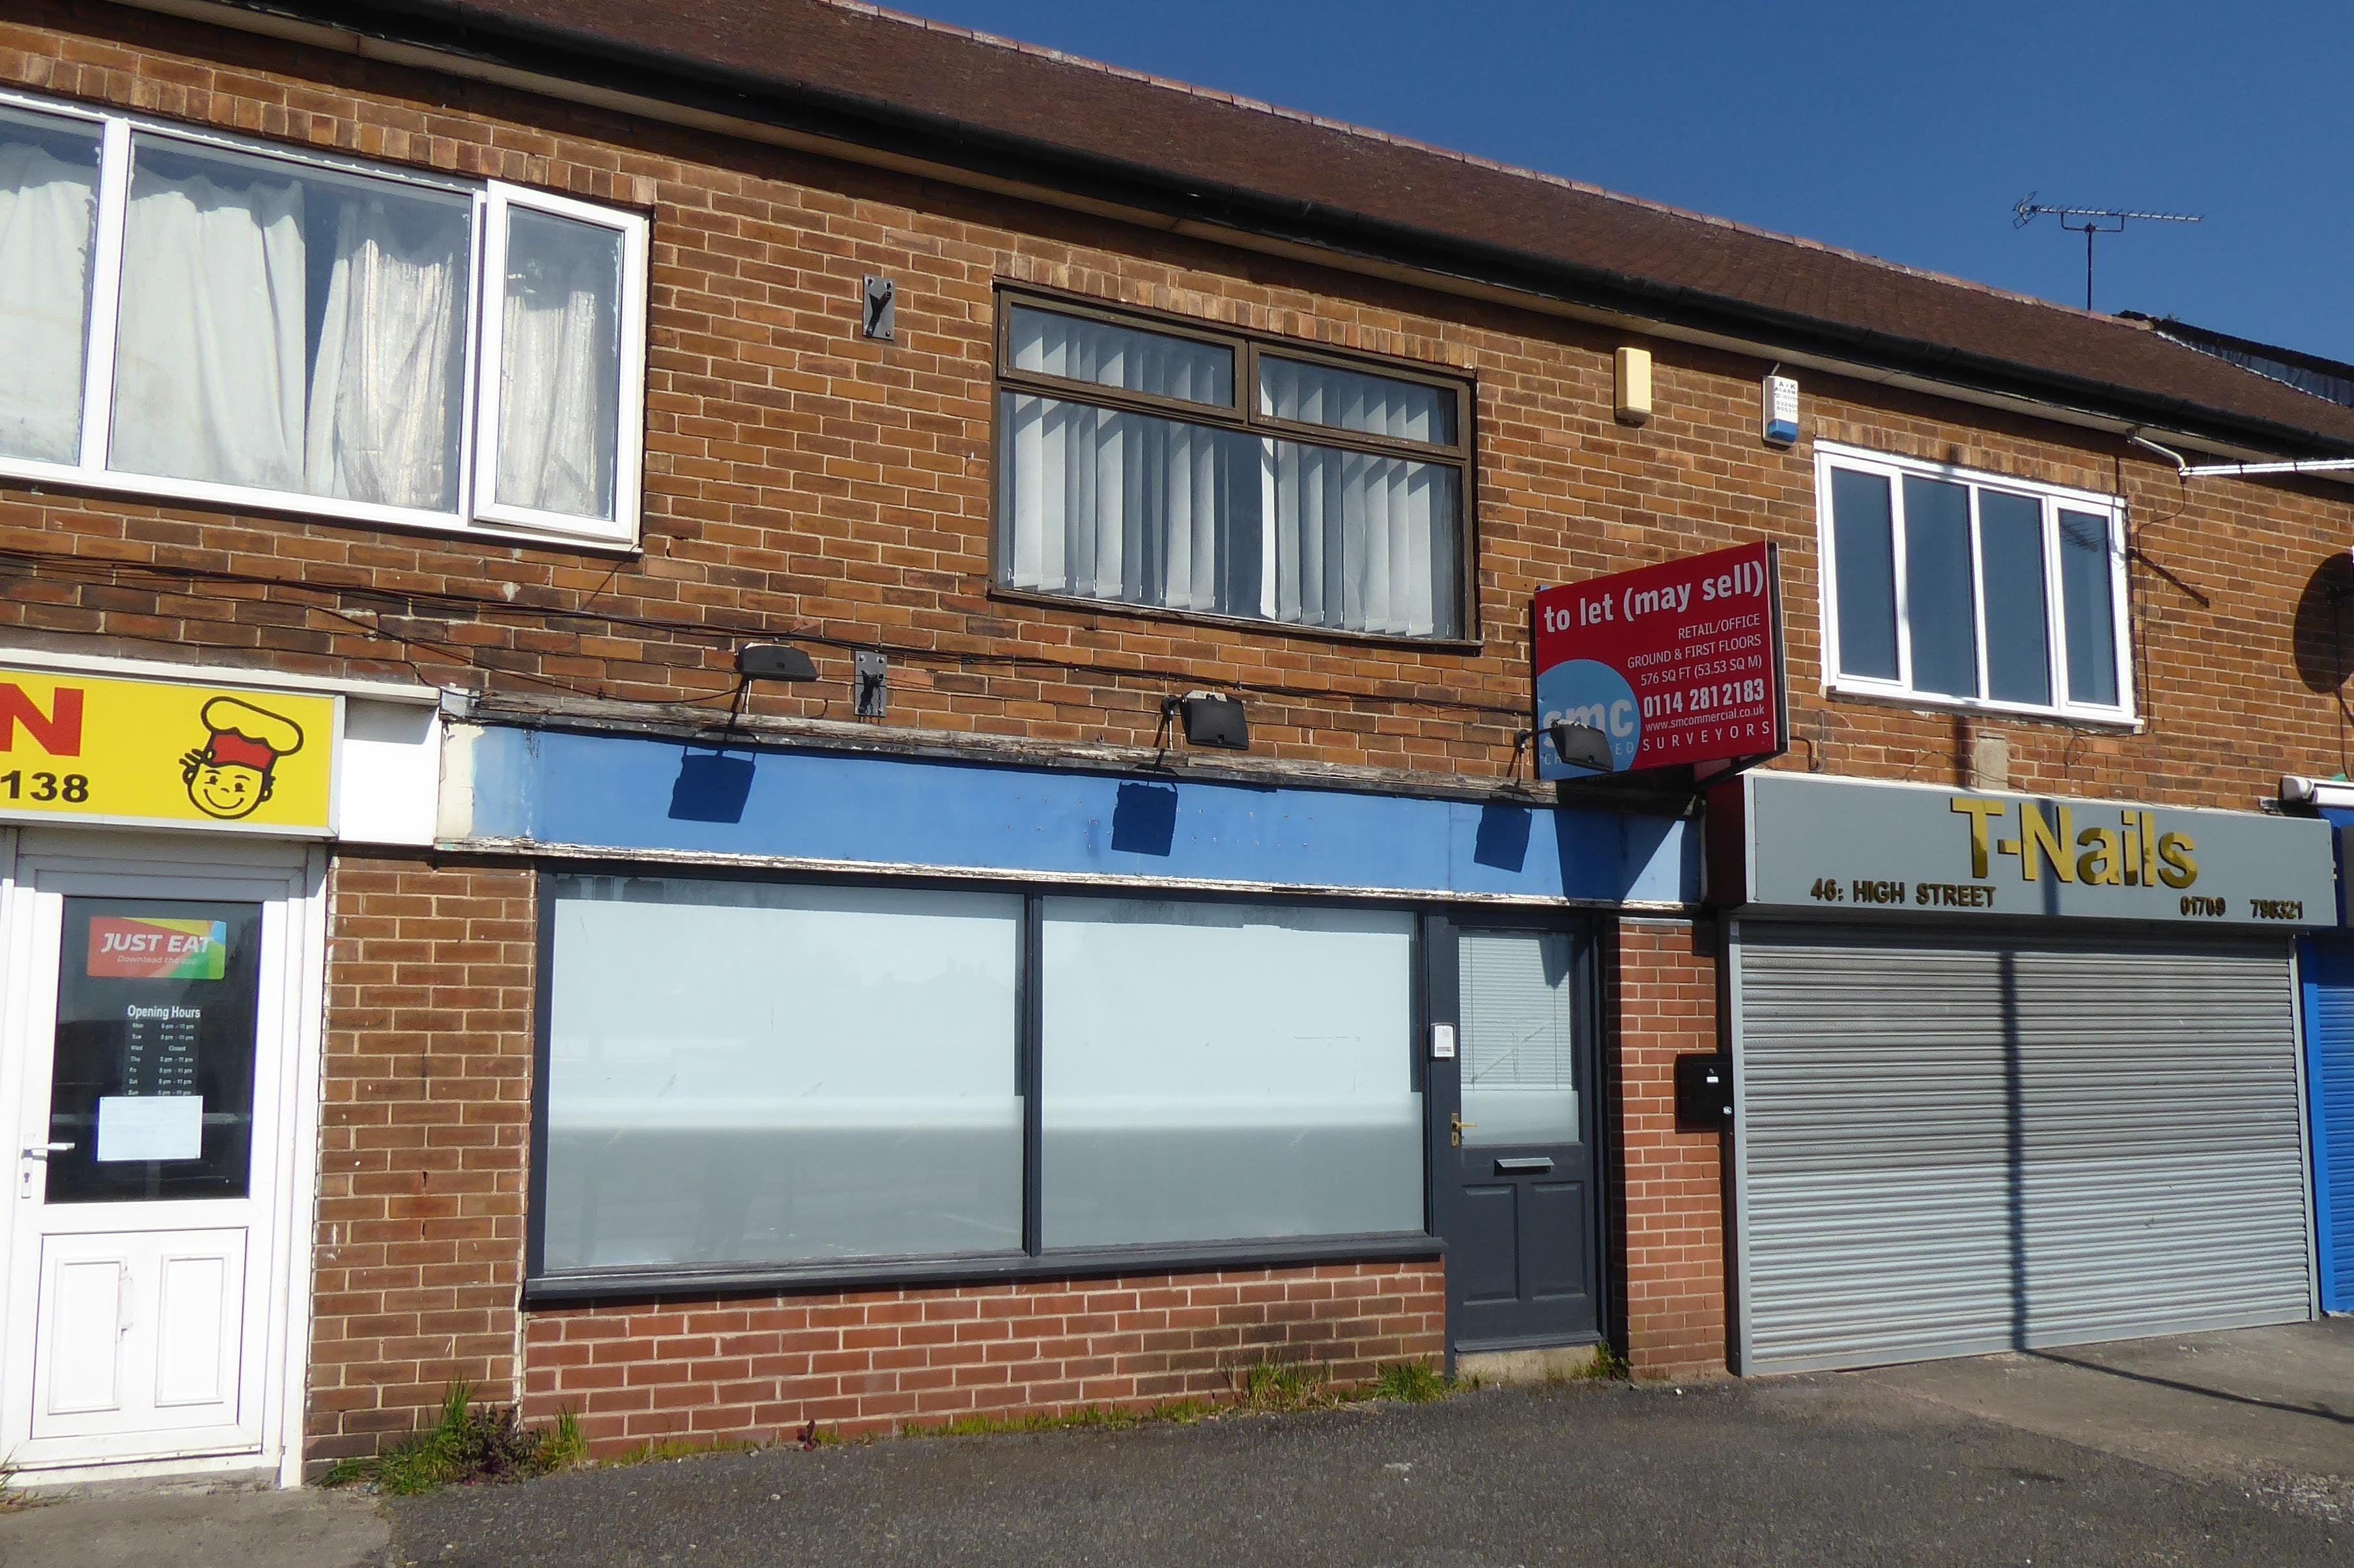 44 High Street, Maltby, Offices / Retail To Let - 44_High_Street_Maltby_Shop_Office_To_Let.JPG